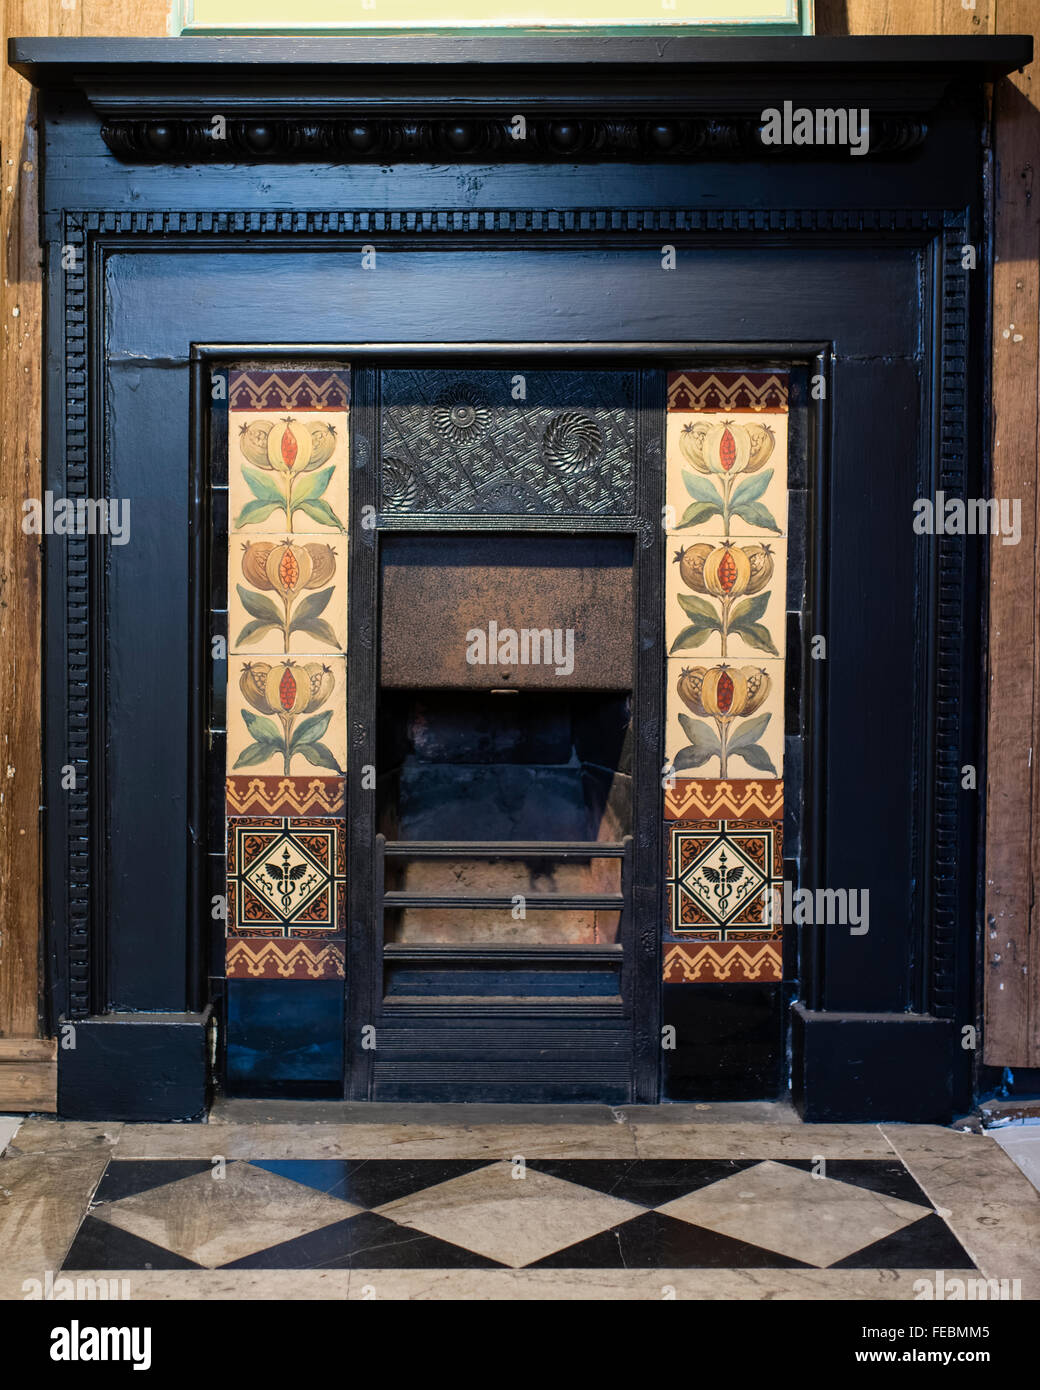 A late Victorian fire-place in the former home of John Ward Knowles (artist), York, England, UK - Stock Image